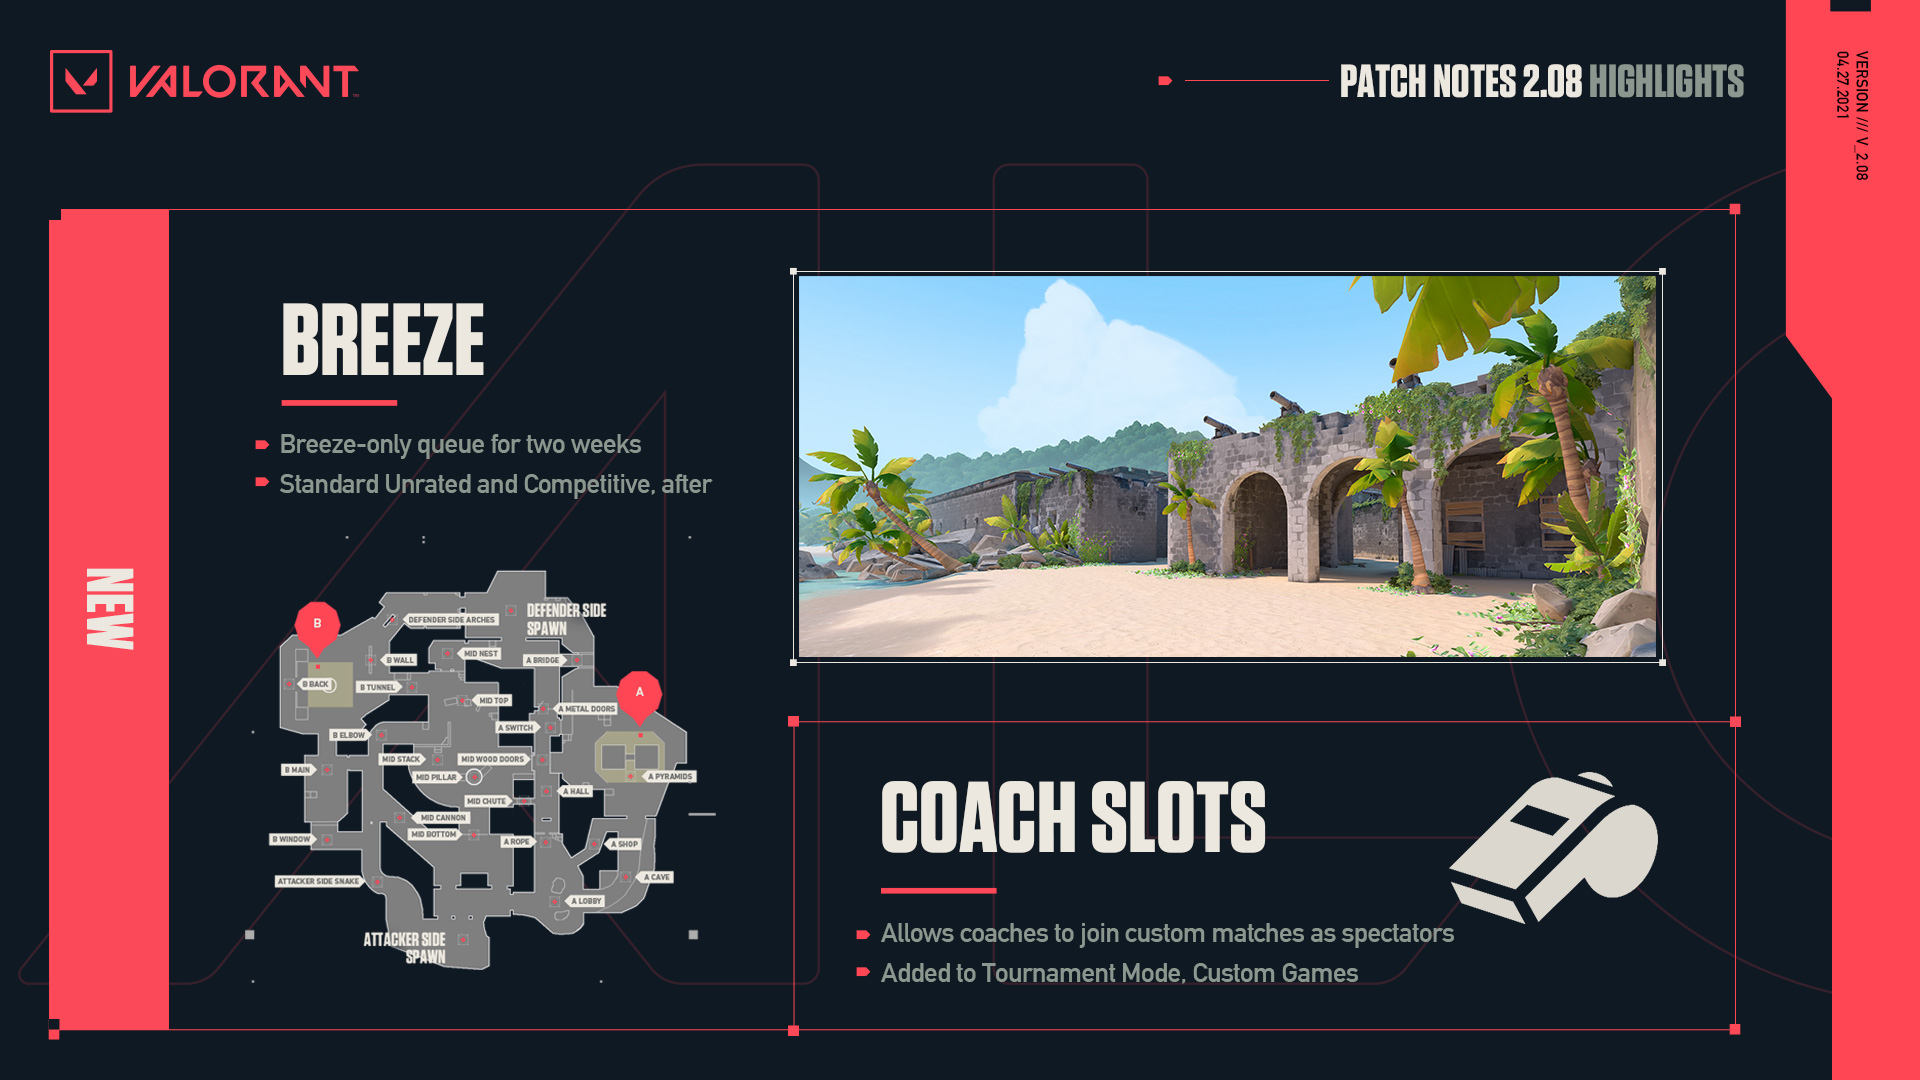 Valorant update 2.08 features a Breeze-only unrated queue and coach slots